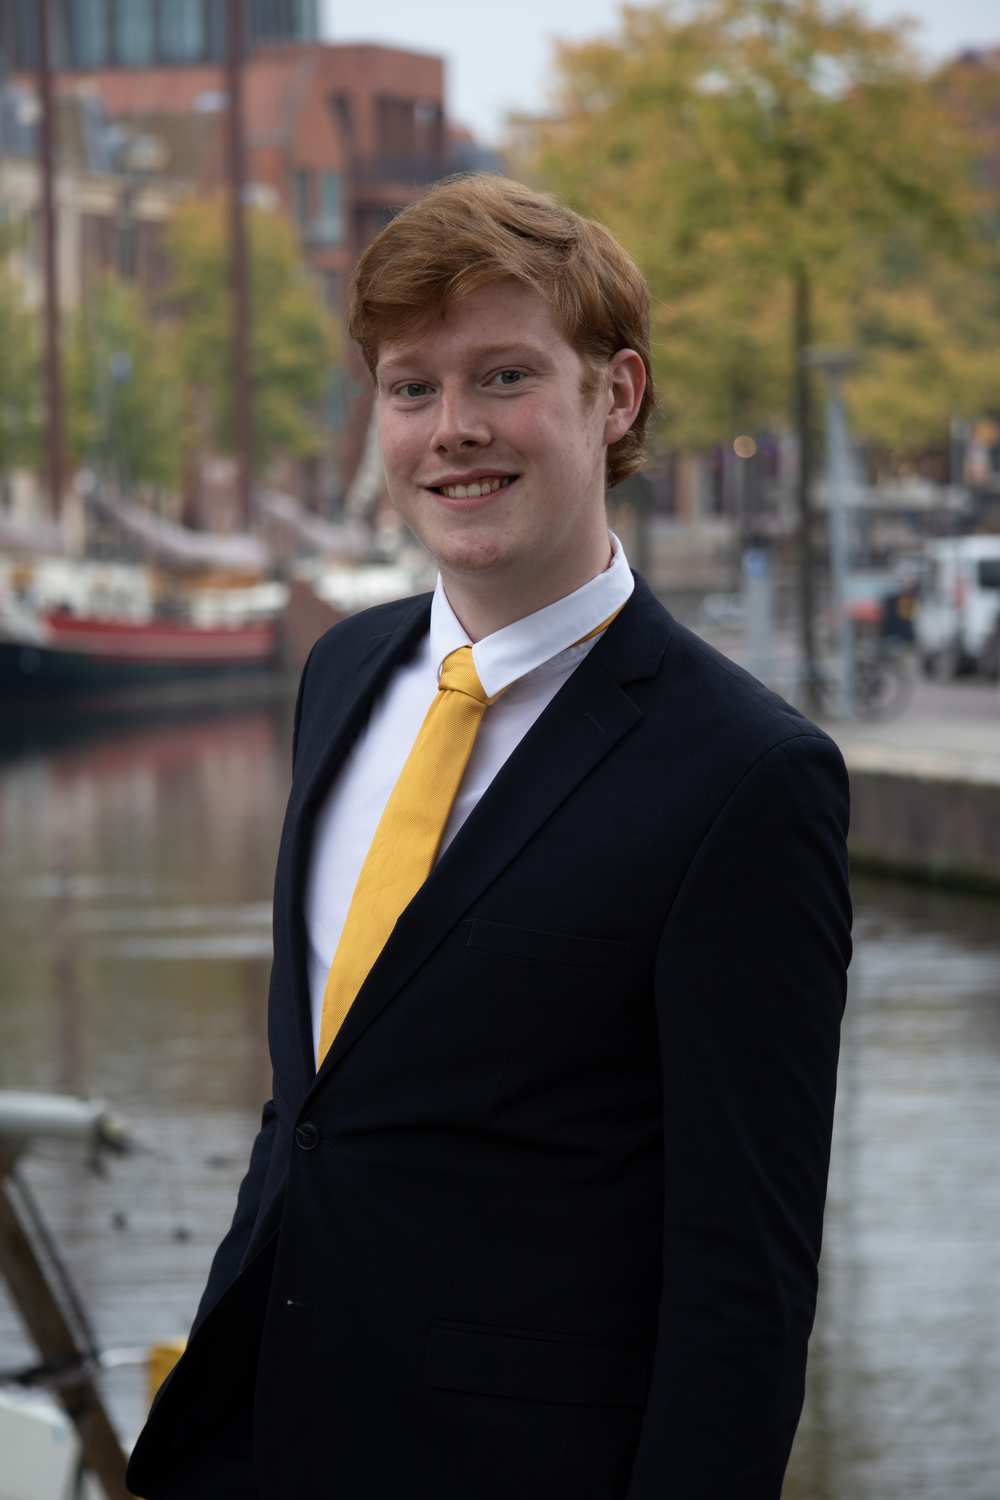 Remco_pers_foto.png